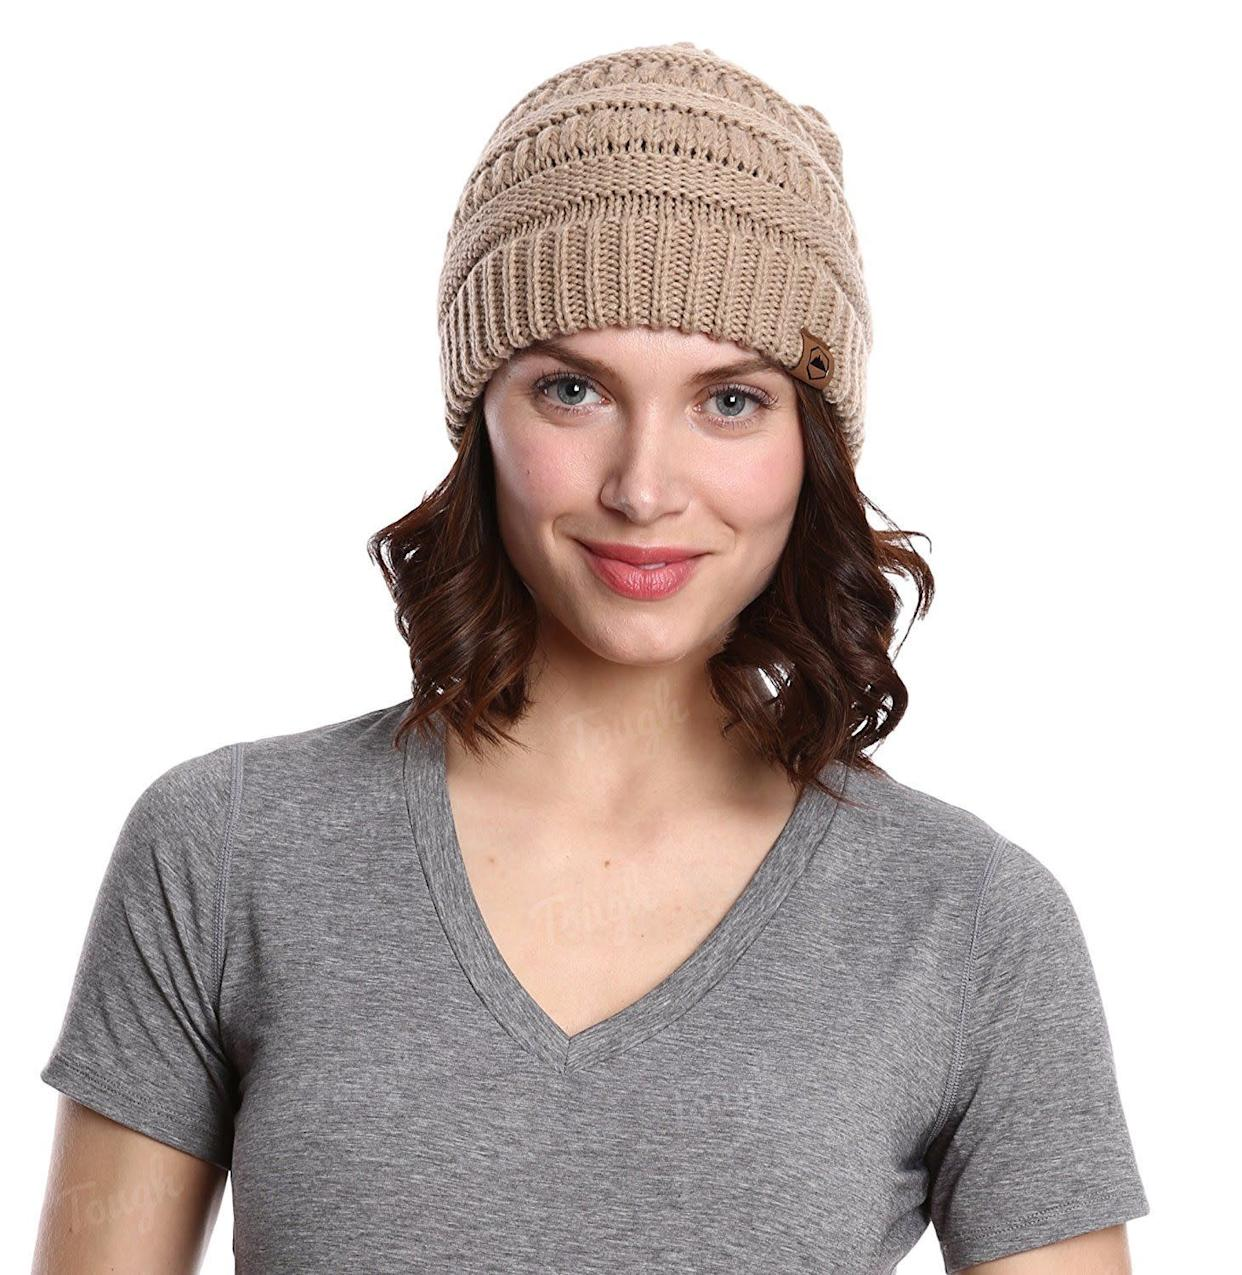 I've had this <span>beanie</span> through my transitioning phase up until my full natural phase and it never disappoints. It actually stays on my head, fits over my curls, and for under $10 it's a true steal.